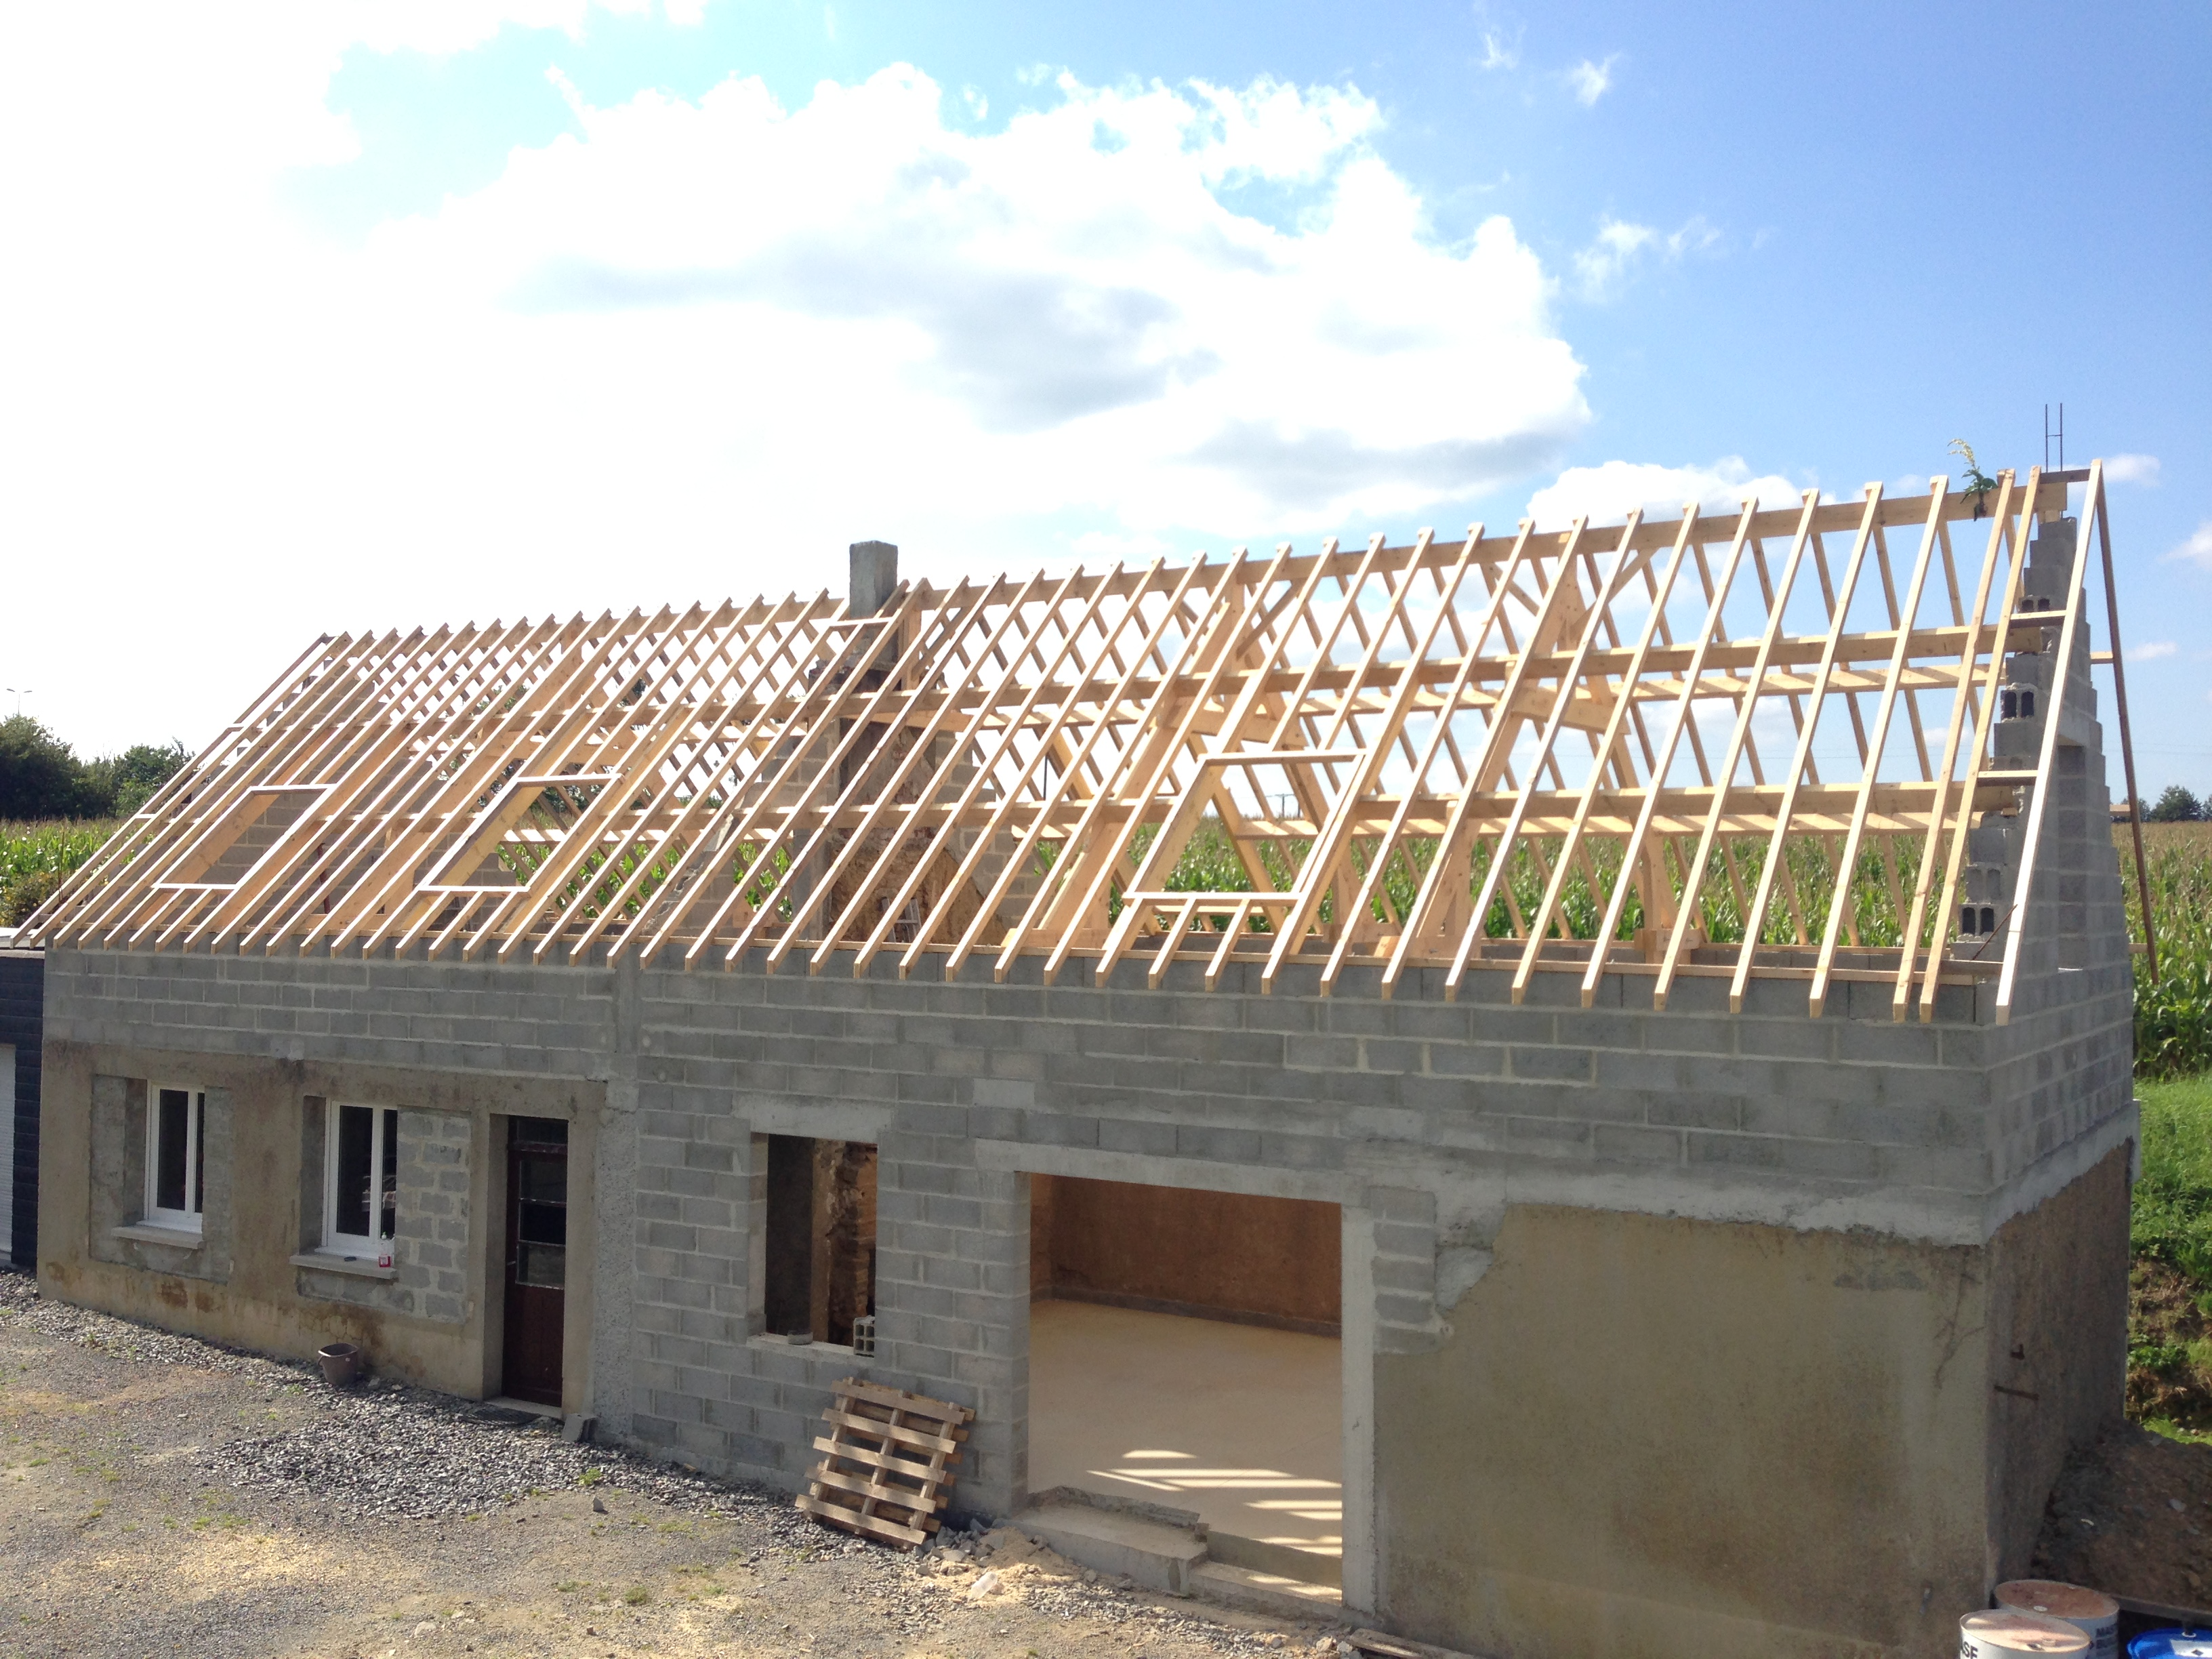 Renovation charpente for Ferme de charpente en bois